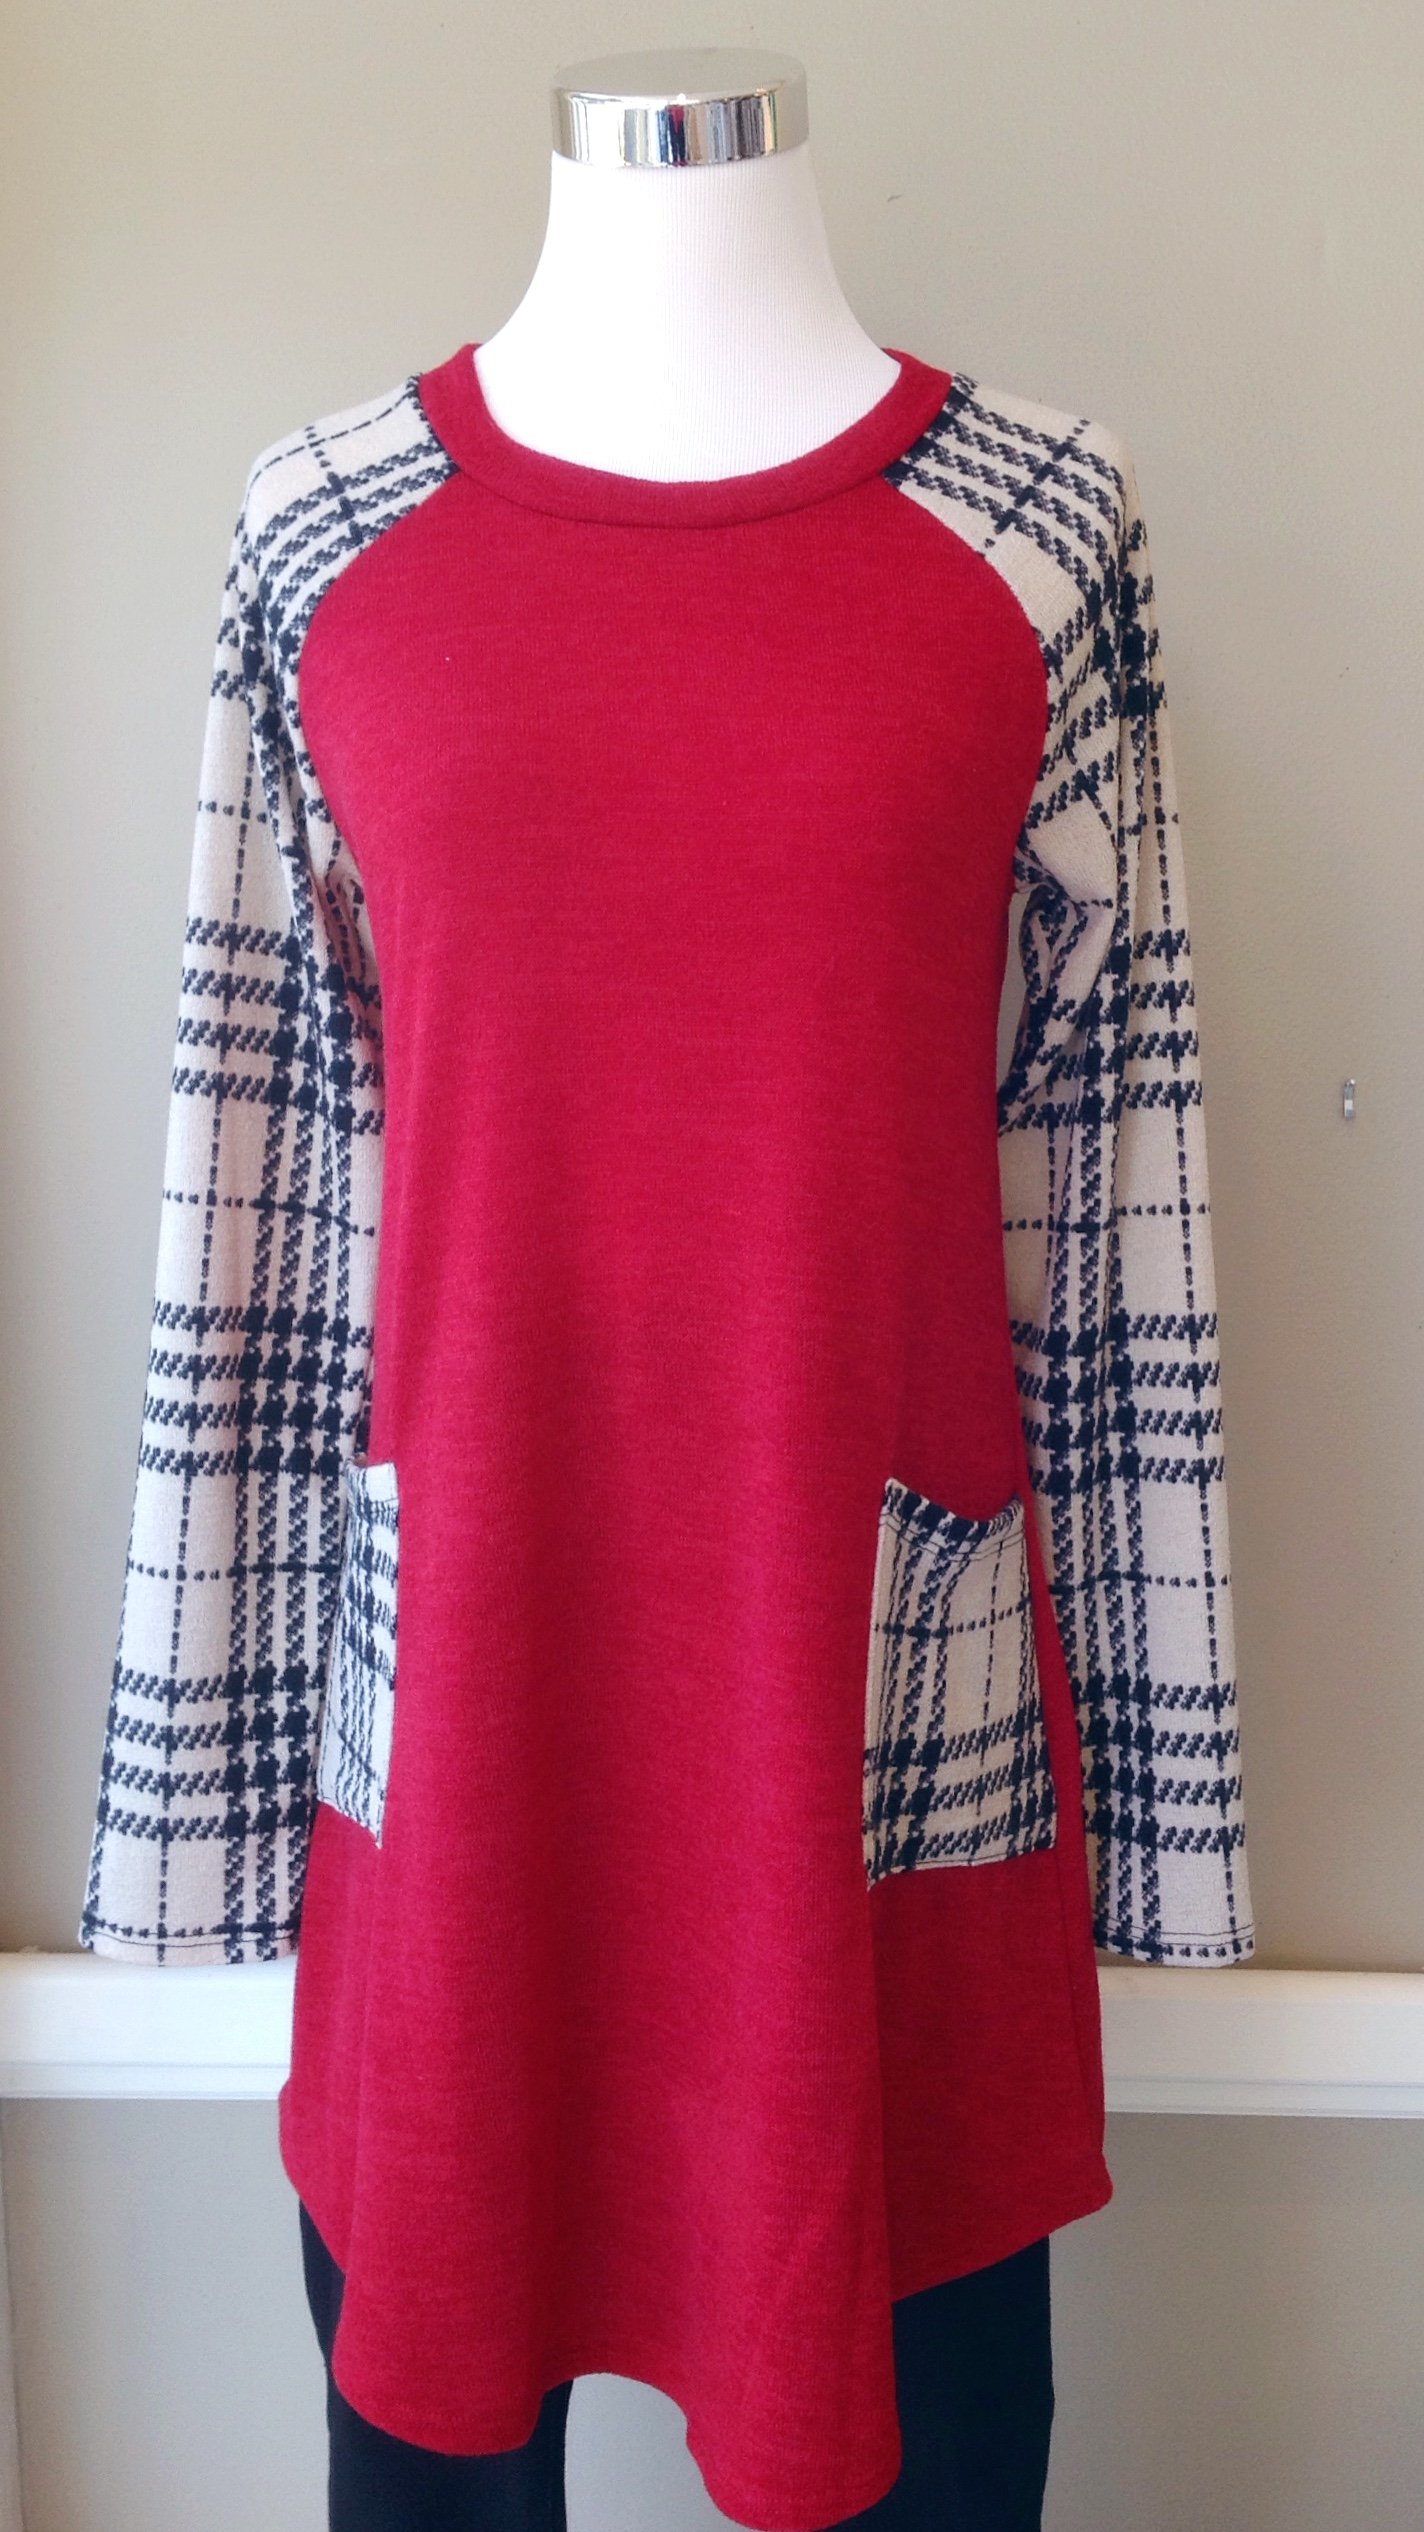 Red sweater tunic with contrasting plaid sleeves and patch pockets, $38